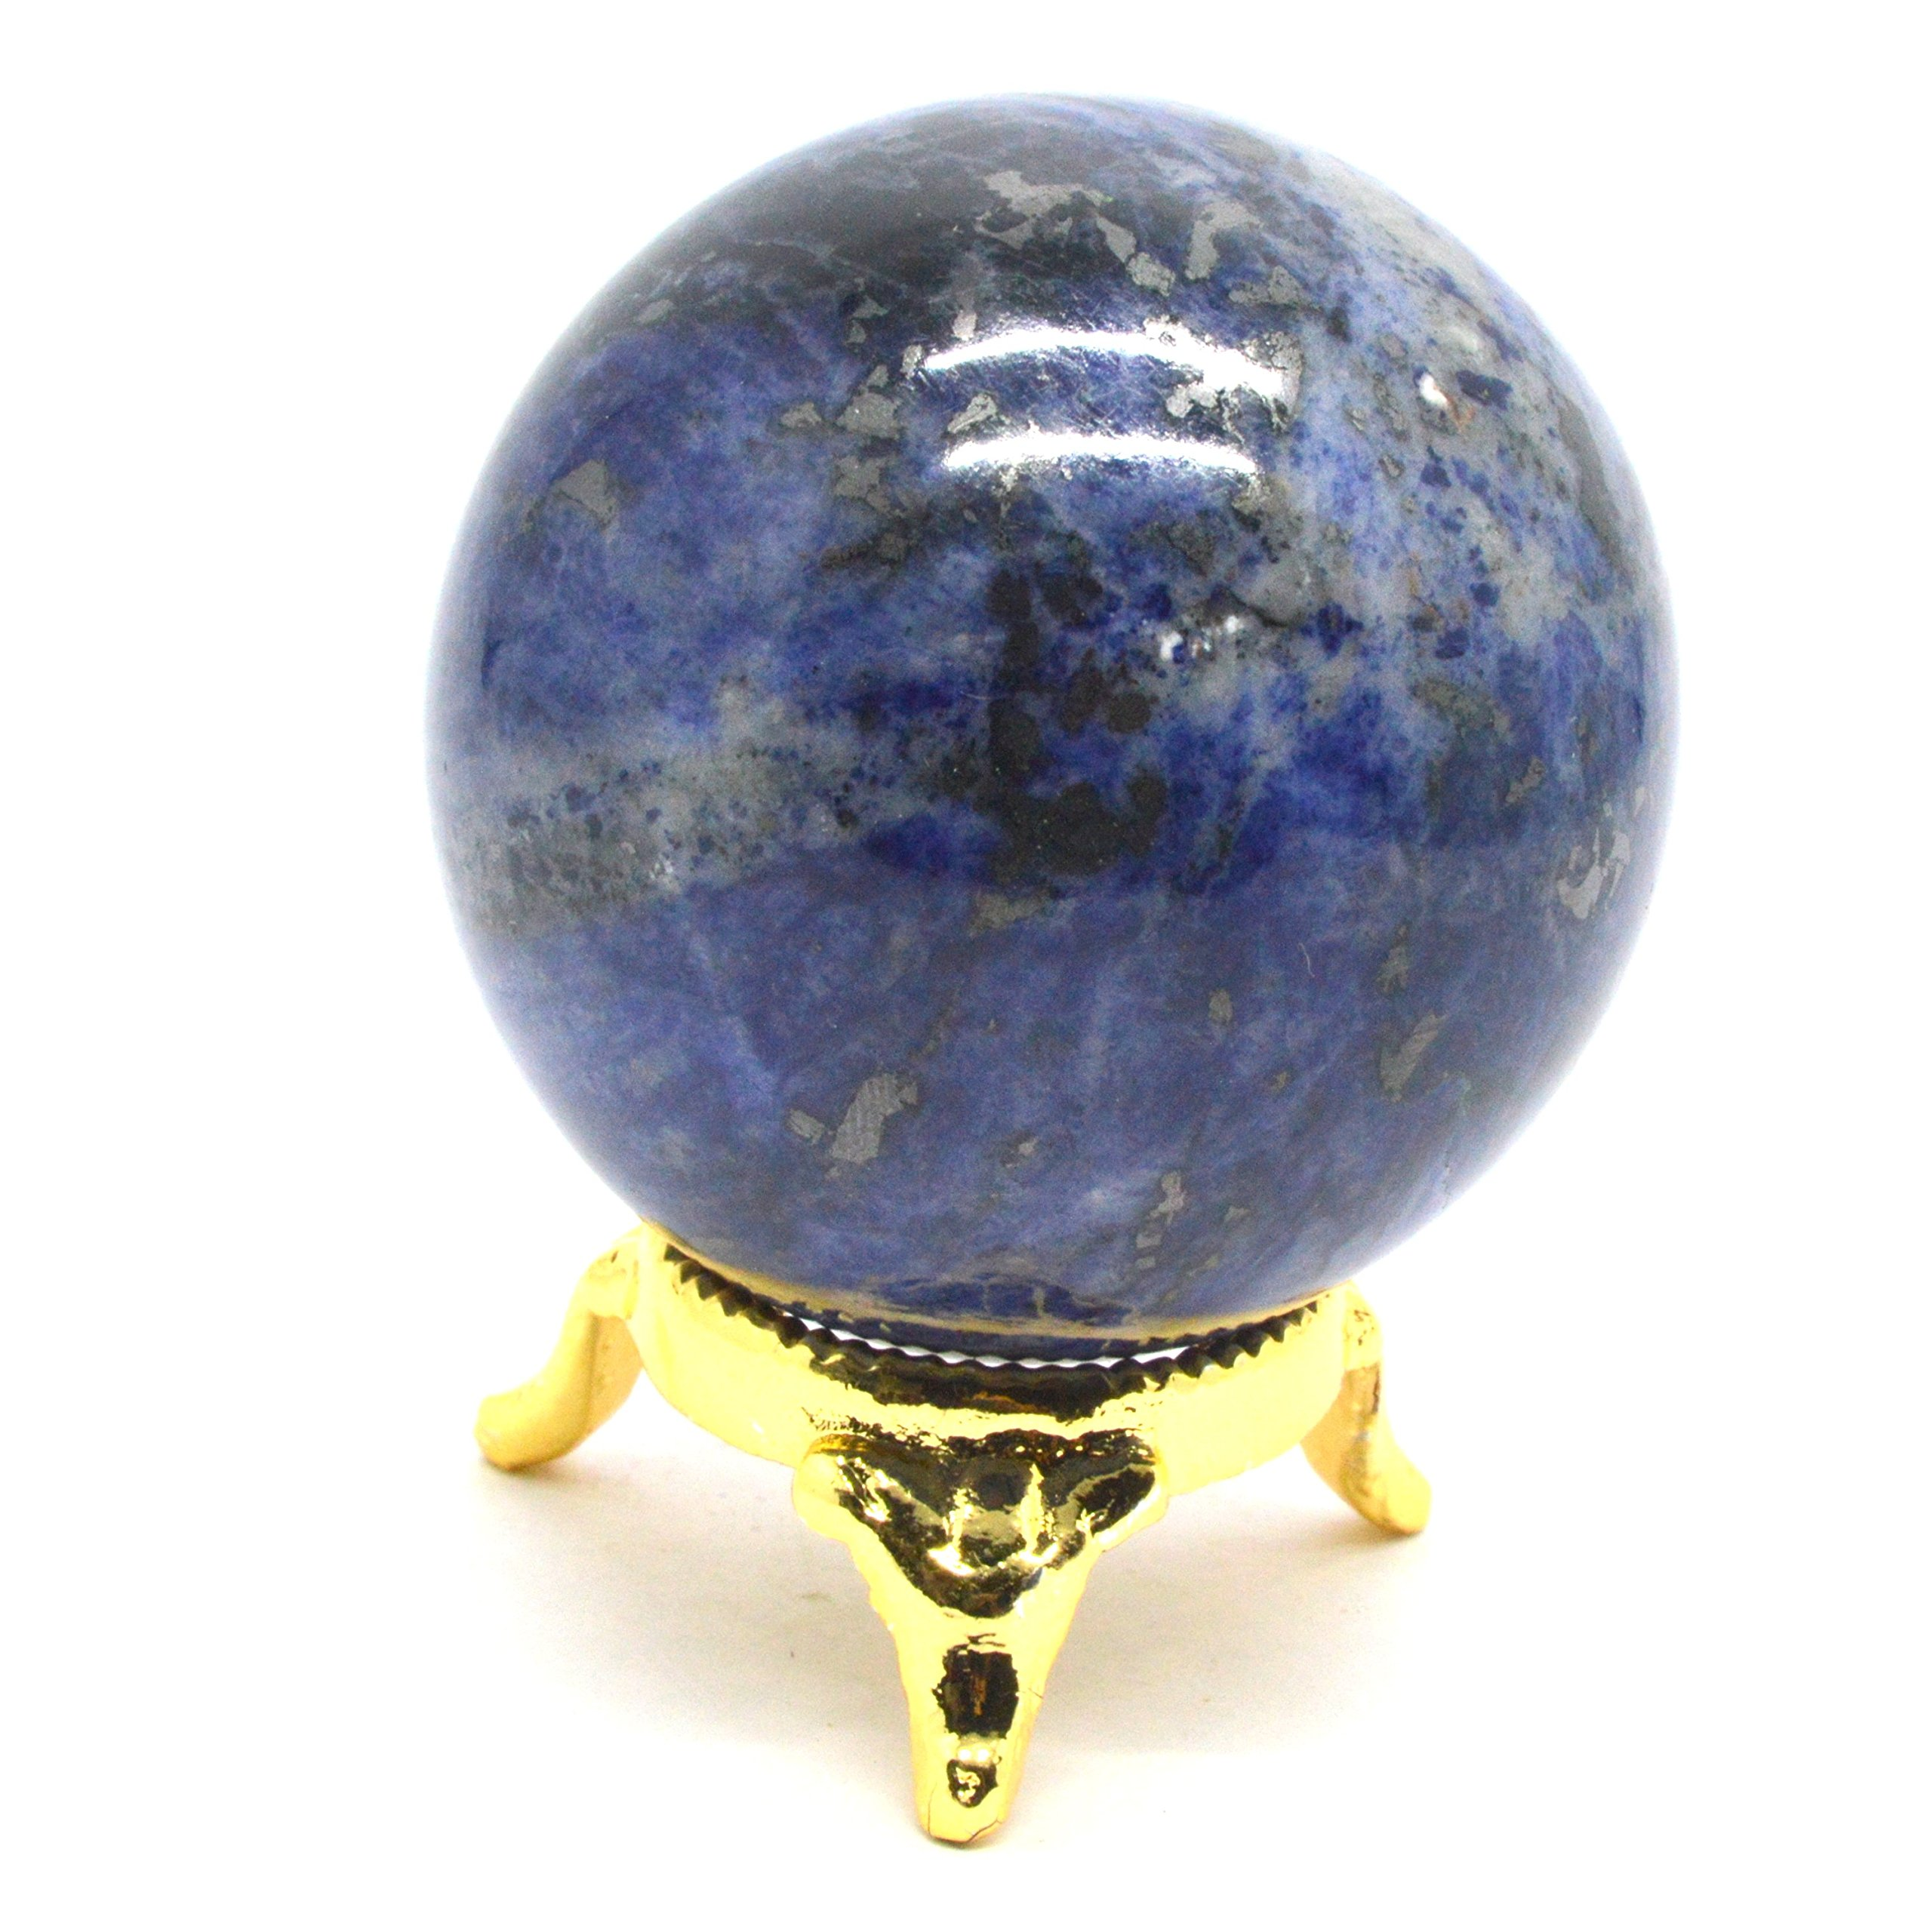 Healing Crystals India: 2'' Sodalite Crystal Sphere Rare Reiki Deep Blue Natural Quartz Polished Ball Metaphysical Healing Mineral Balance Third Eye Chakra